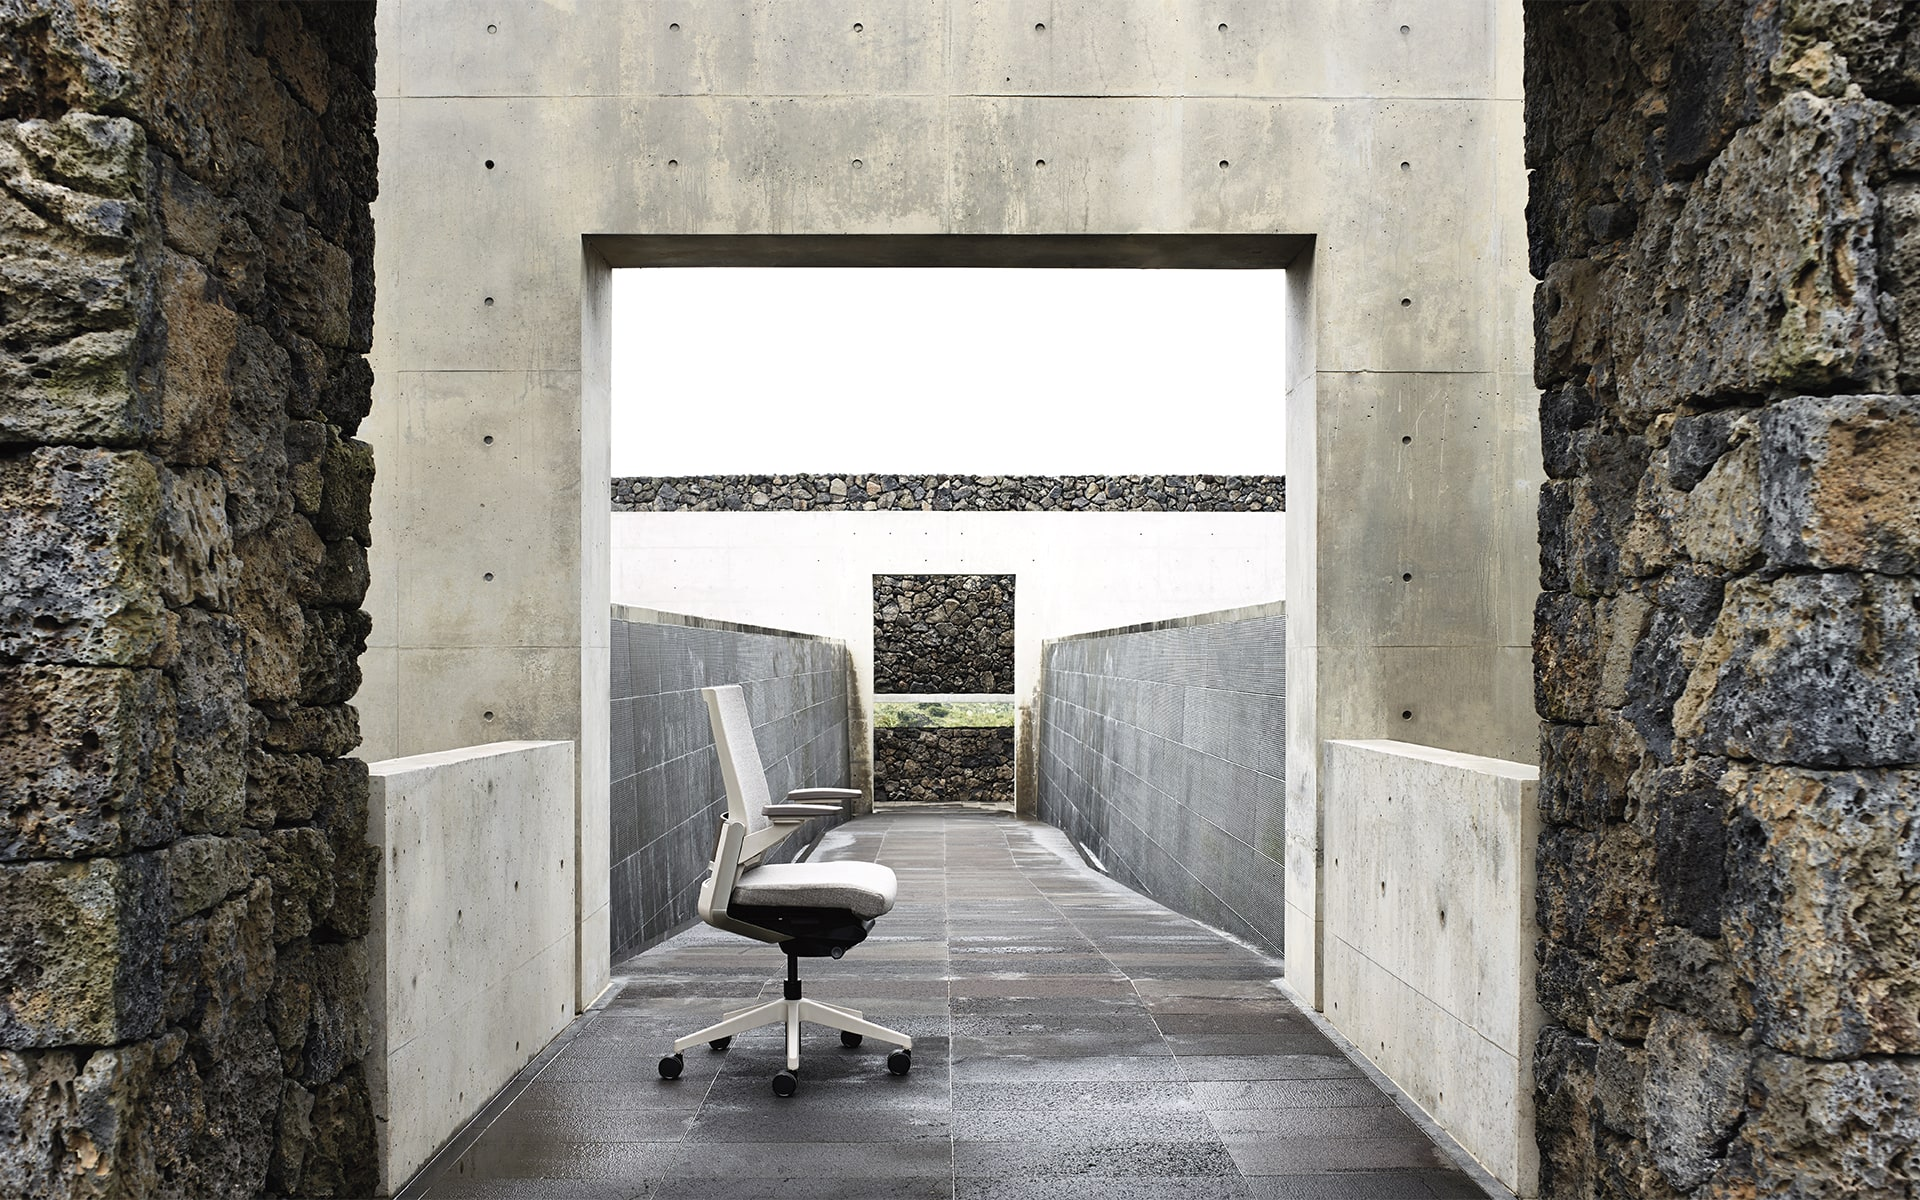 Gray Sidiz T80 executive office chair by ITO Design in outdoor area with raw stones